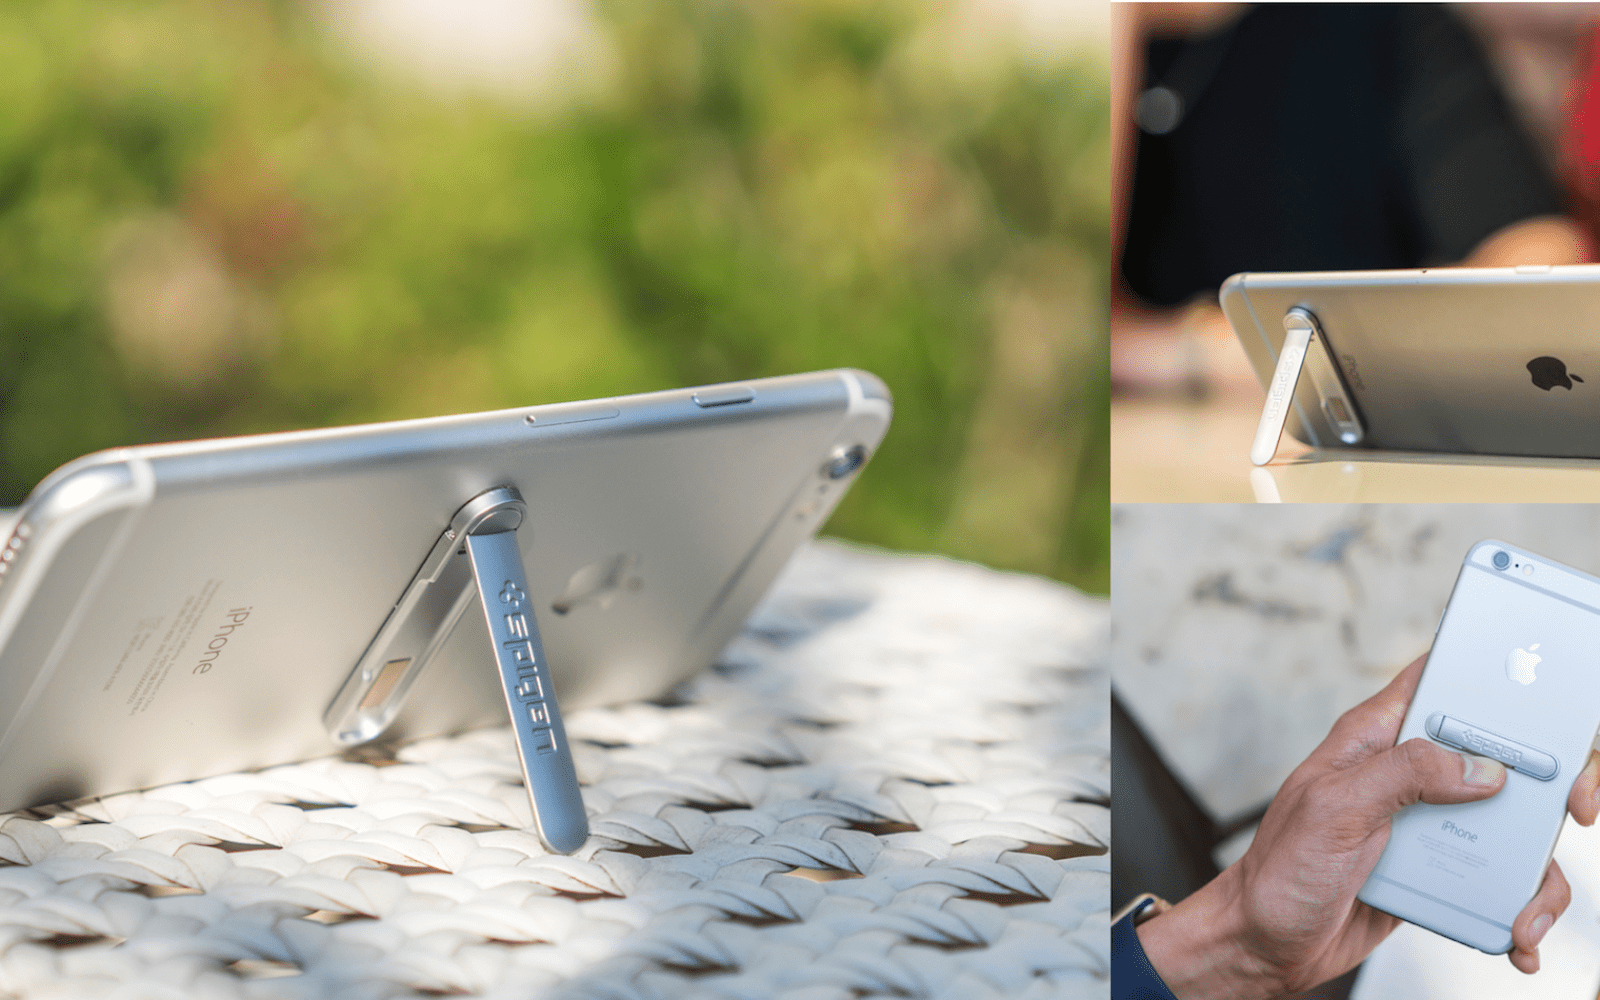 Spigen's Universal Metal Kickstand adds a sleek built-in stand to iPhone for $10 [Video]